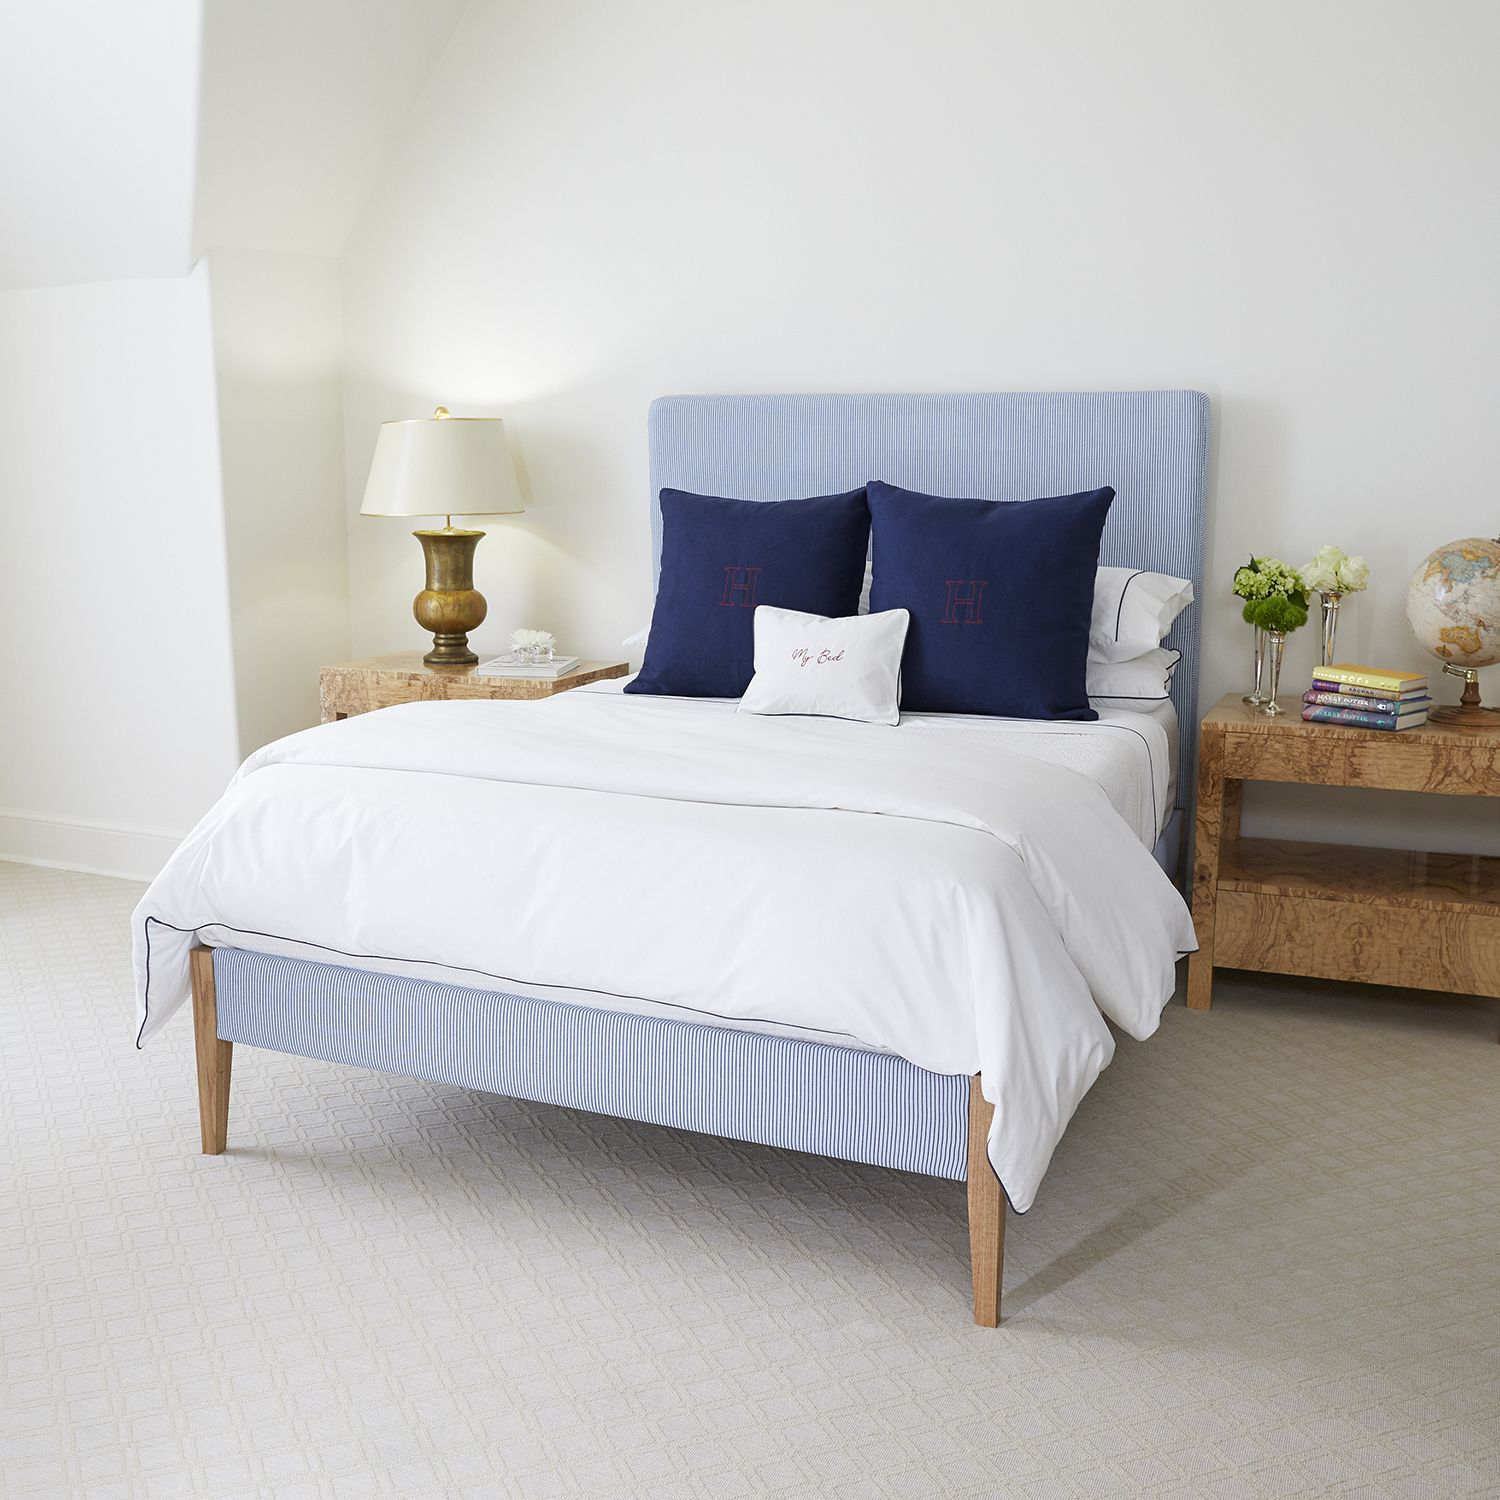 Picture of: Coley Home Offers Shippable Customizable Beds Ideal For Small Spaces